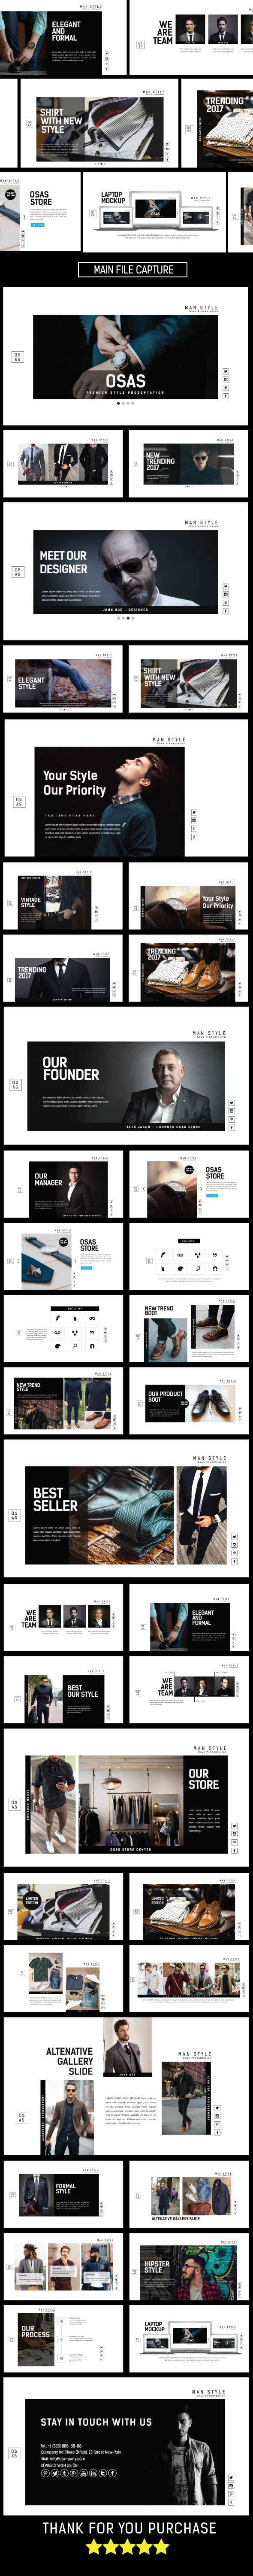 487 best apresentao images on pinterest books diagram design osas fashion style powerpoint template powerpoint templates presentation templates toneelgroepblik Image collections